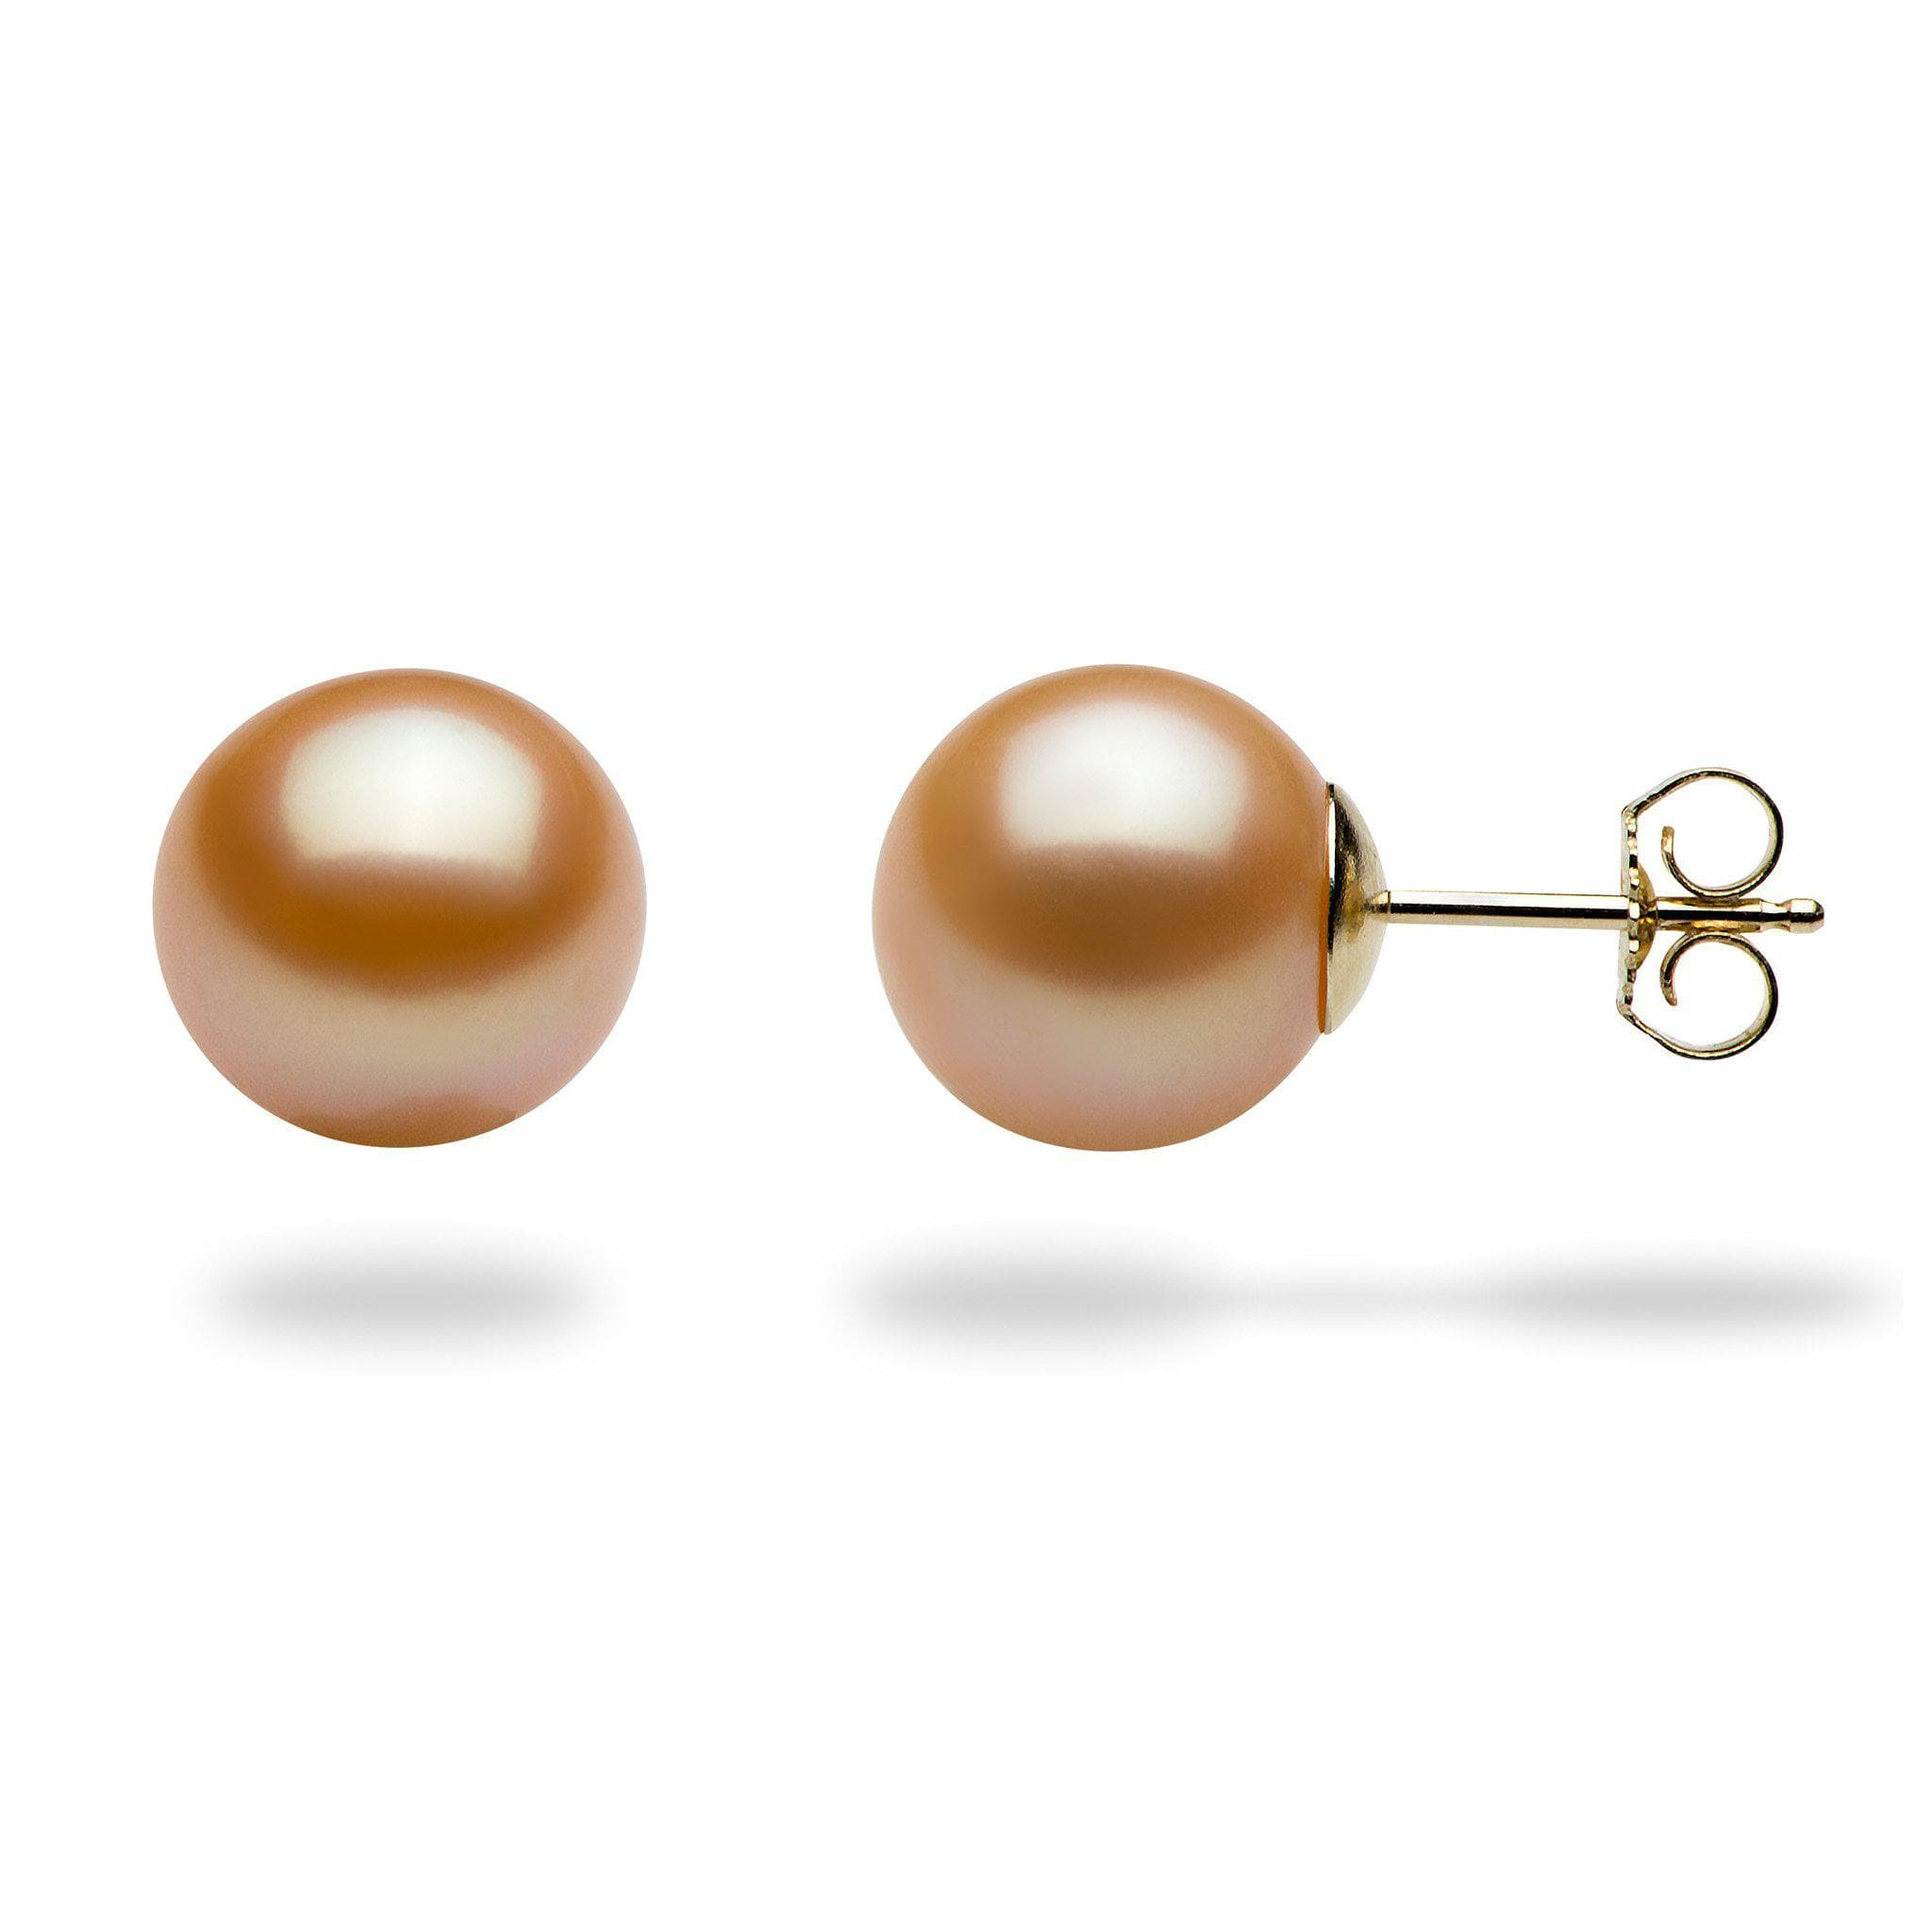 online island jewelry tahitian gold white collections handmade shop stud real pearls earrings hawaii in pearl black